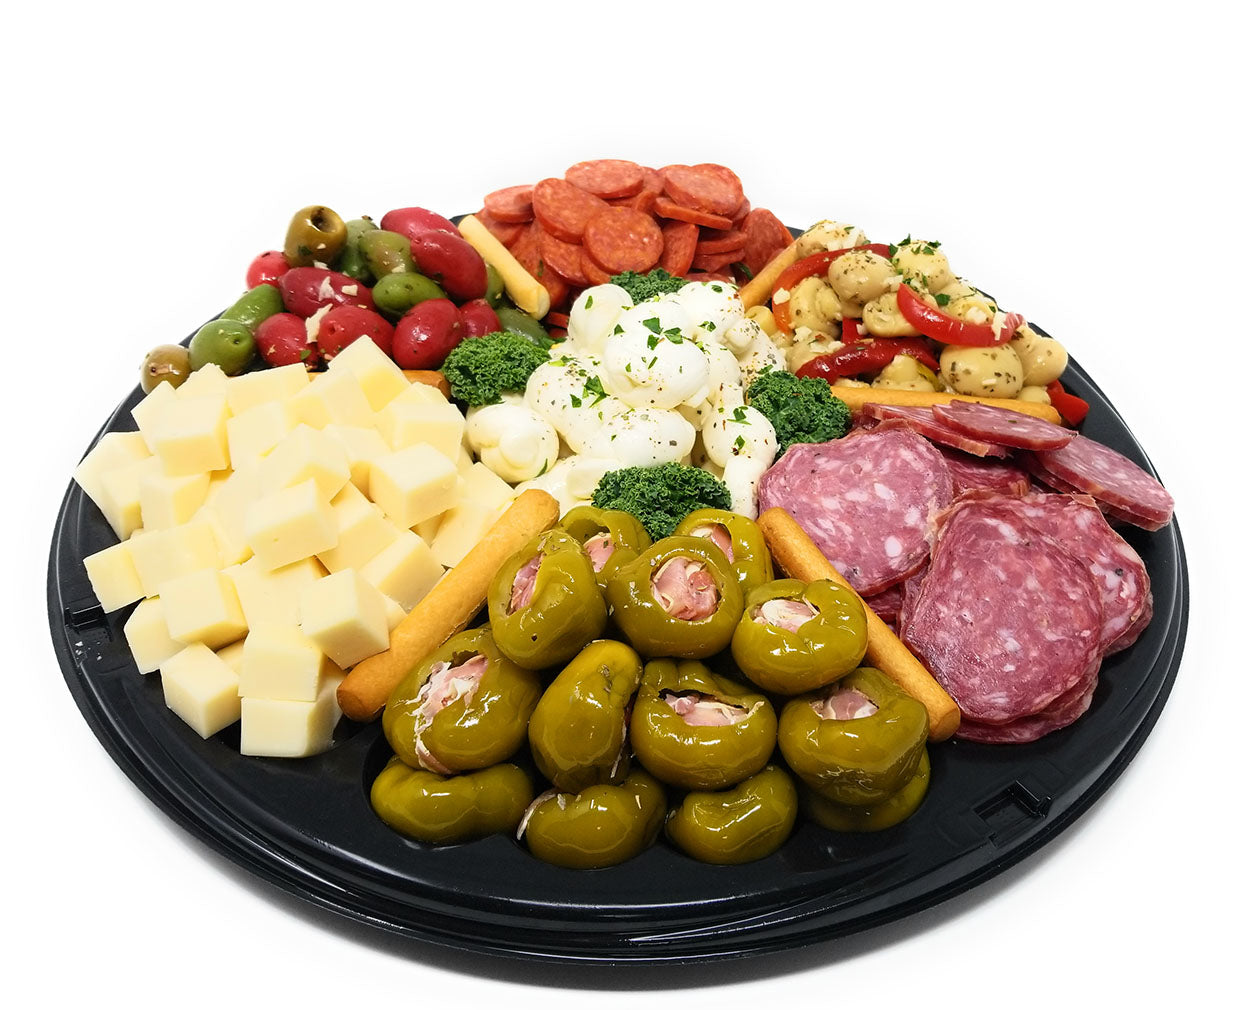 Frank and Sal Famous 12 Inch Antipasto Tray Feeds 6 - 8 People - Made Fresh Per Order - Overnight Free Shipping